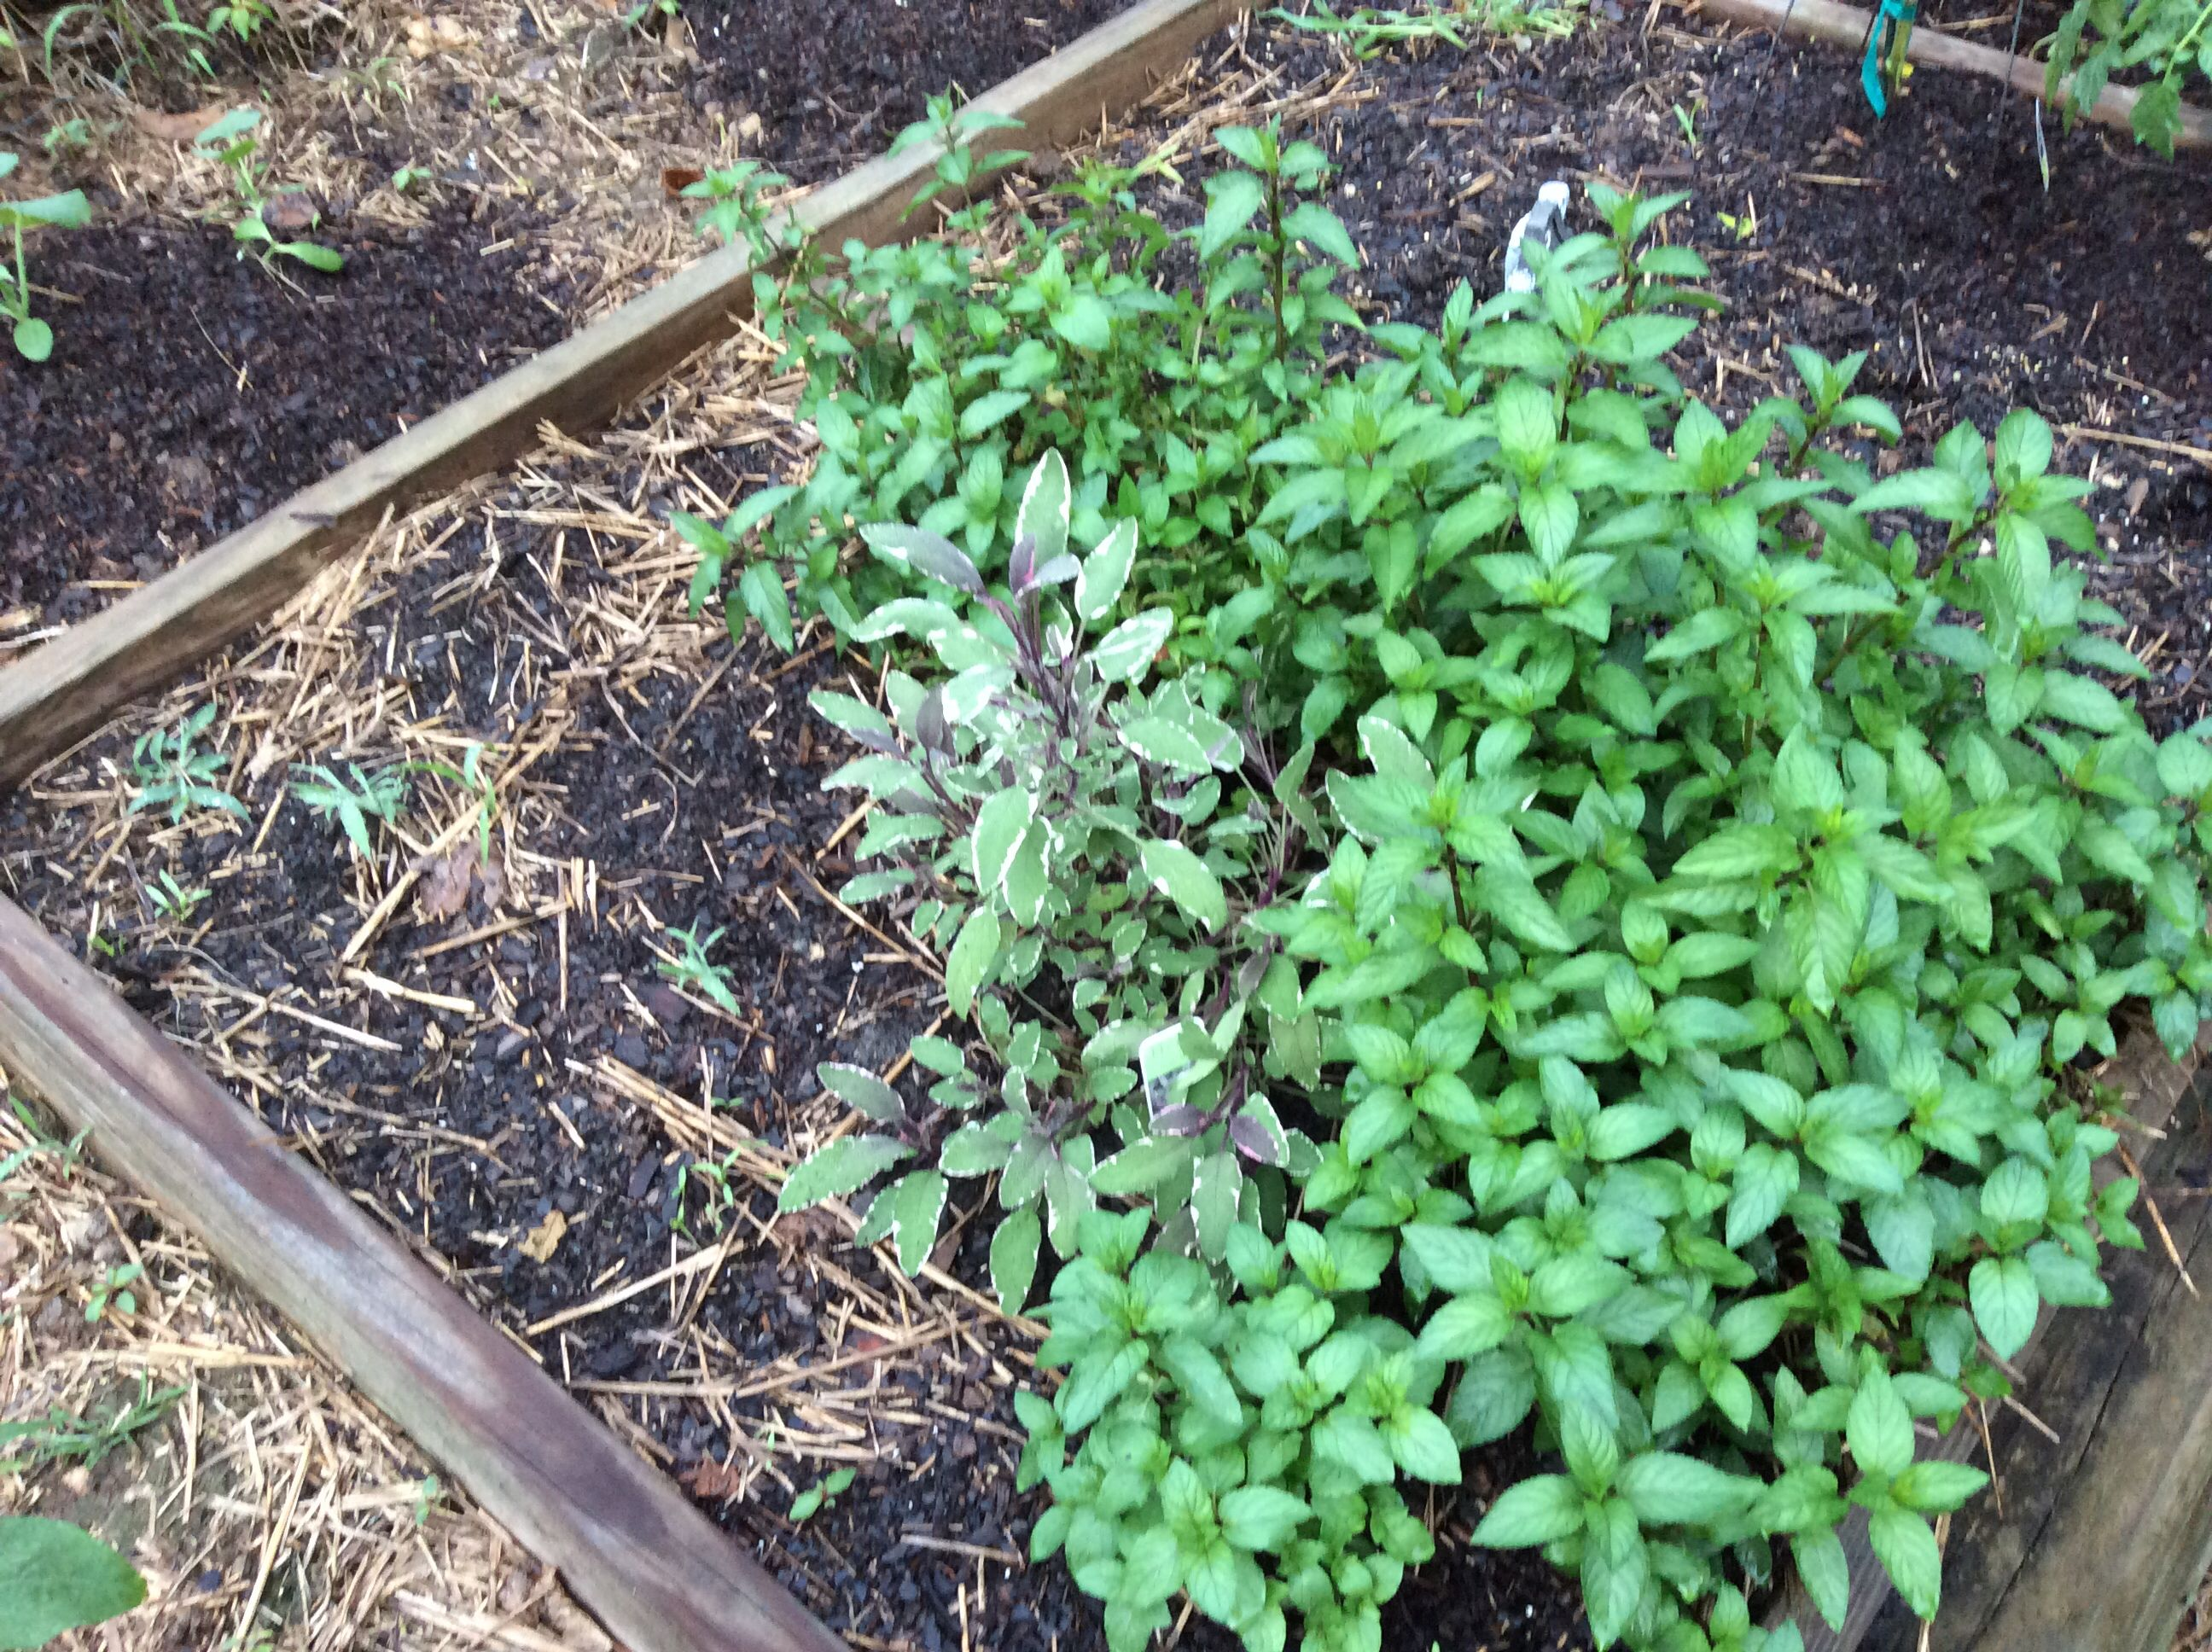 Lots of mint and a little tricolor sage